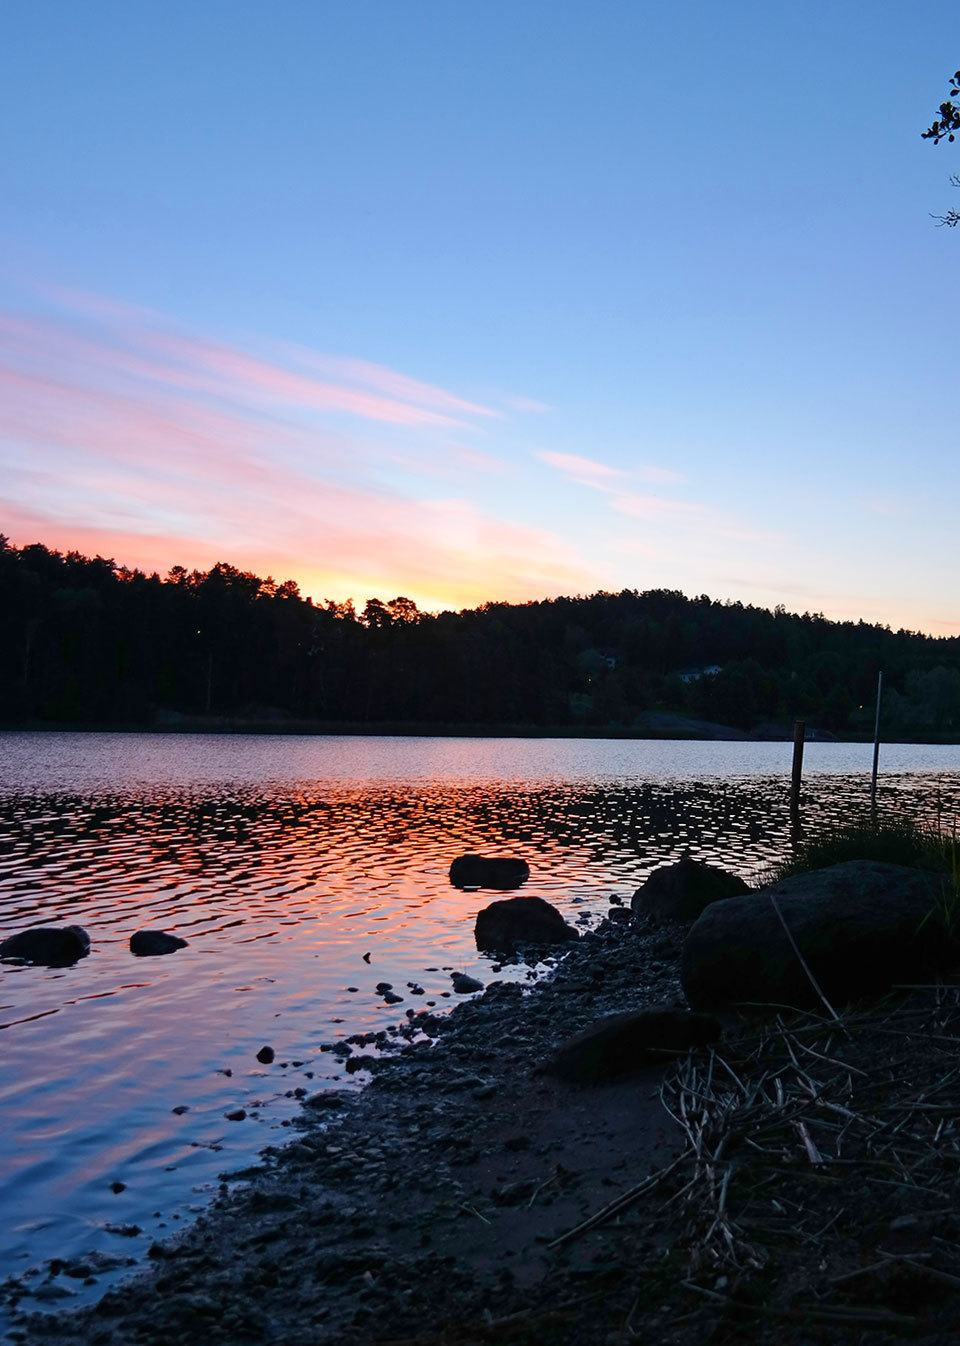 nightless night in Finland - the famous midnight sun. Travel photo by Katja Presnal | @skimbaco